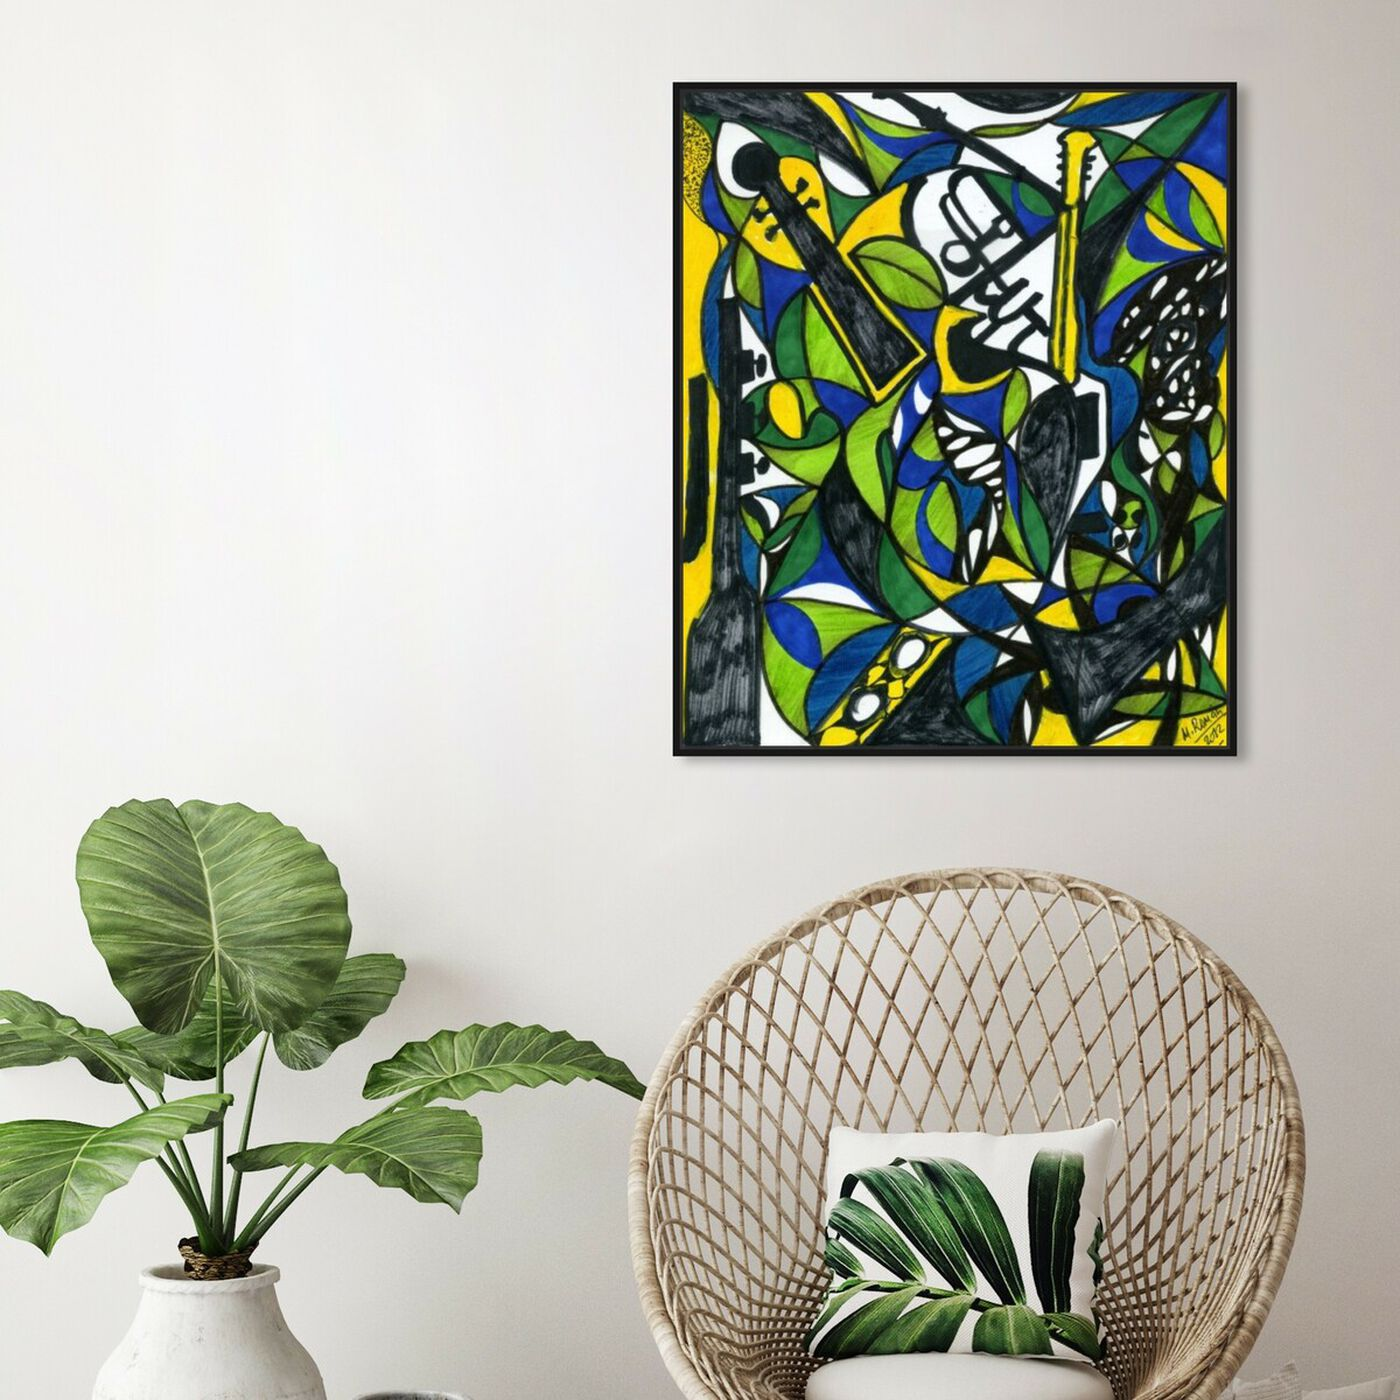 Hanging view of The Musicians featuring abstract and shapes art.